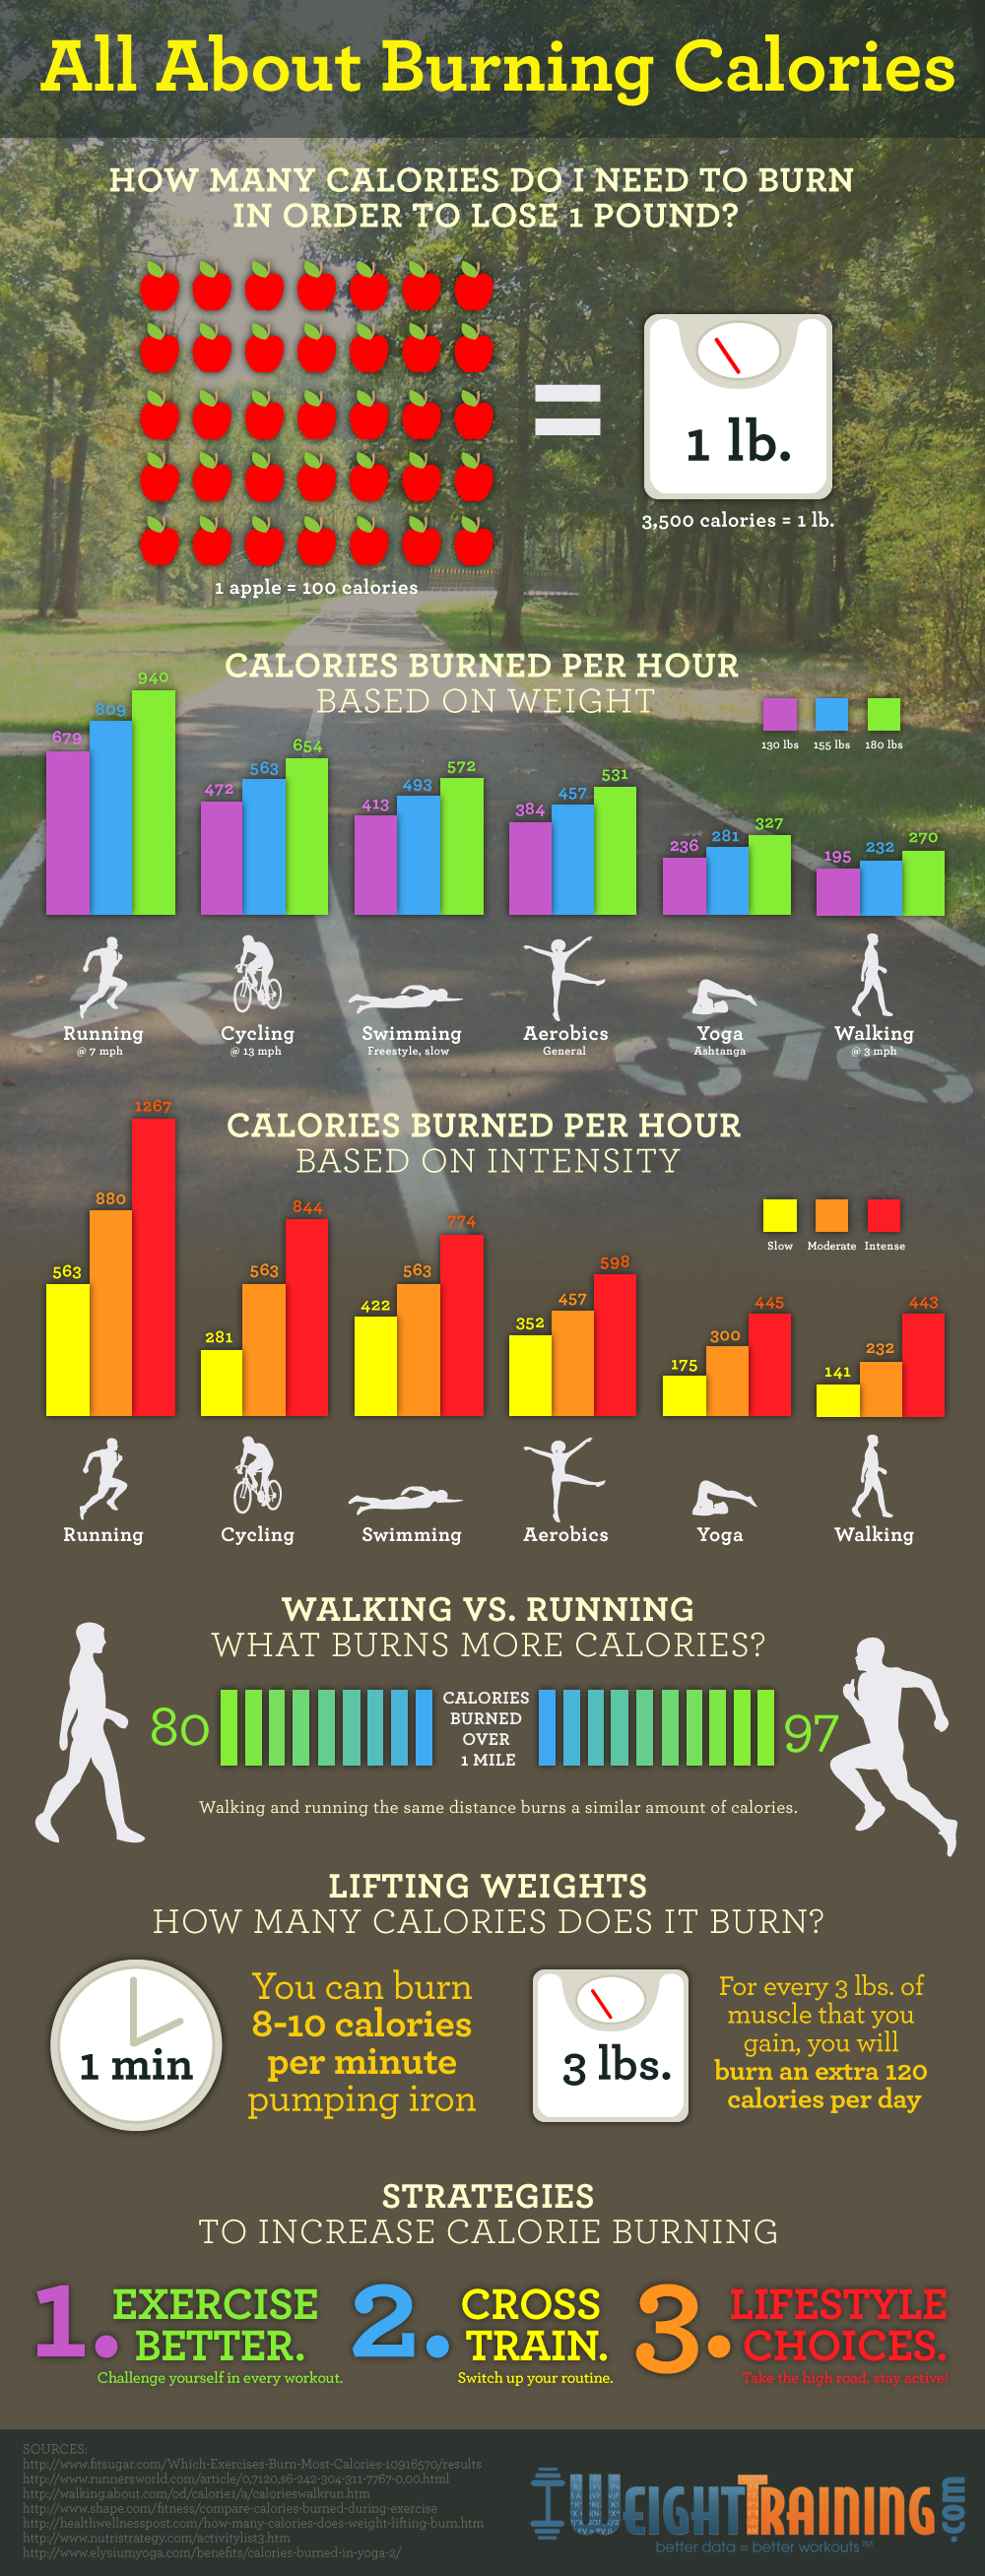 All About Burning Calories | Burn calories, Fitness ...